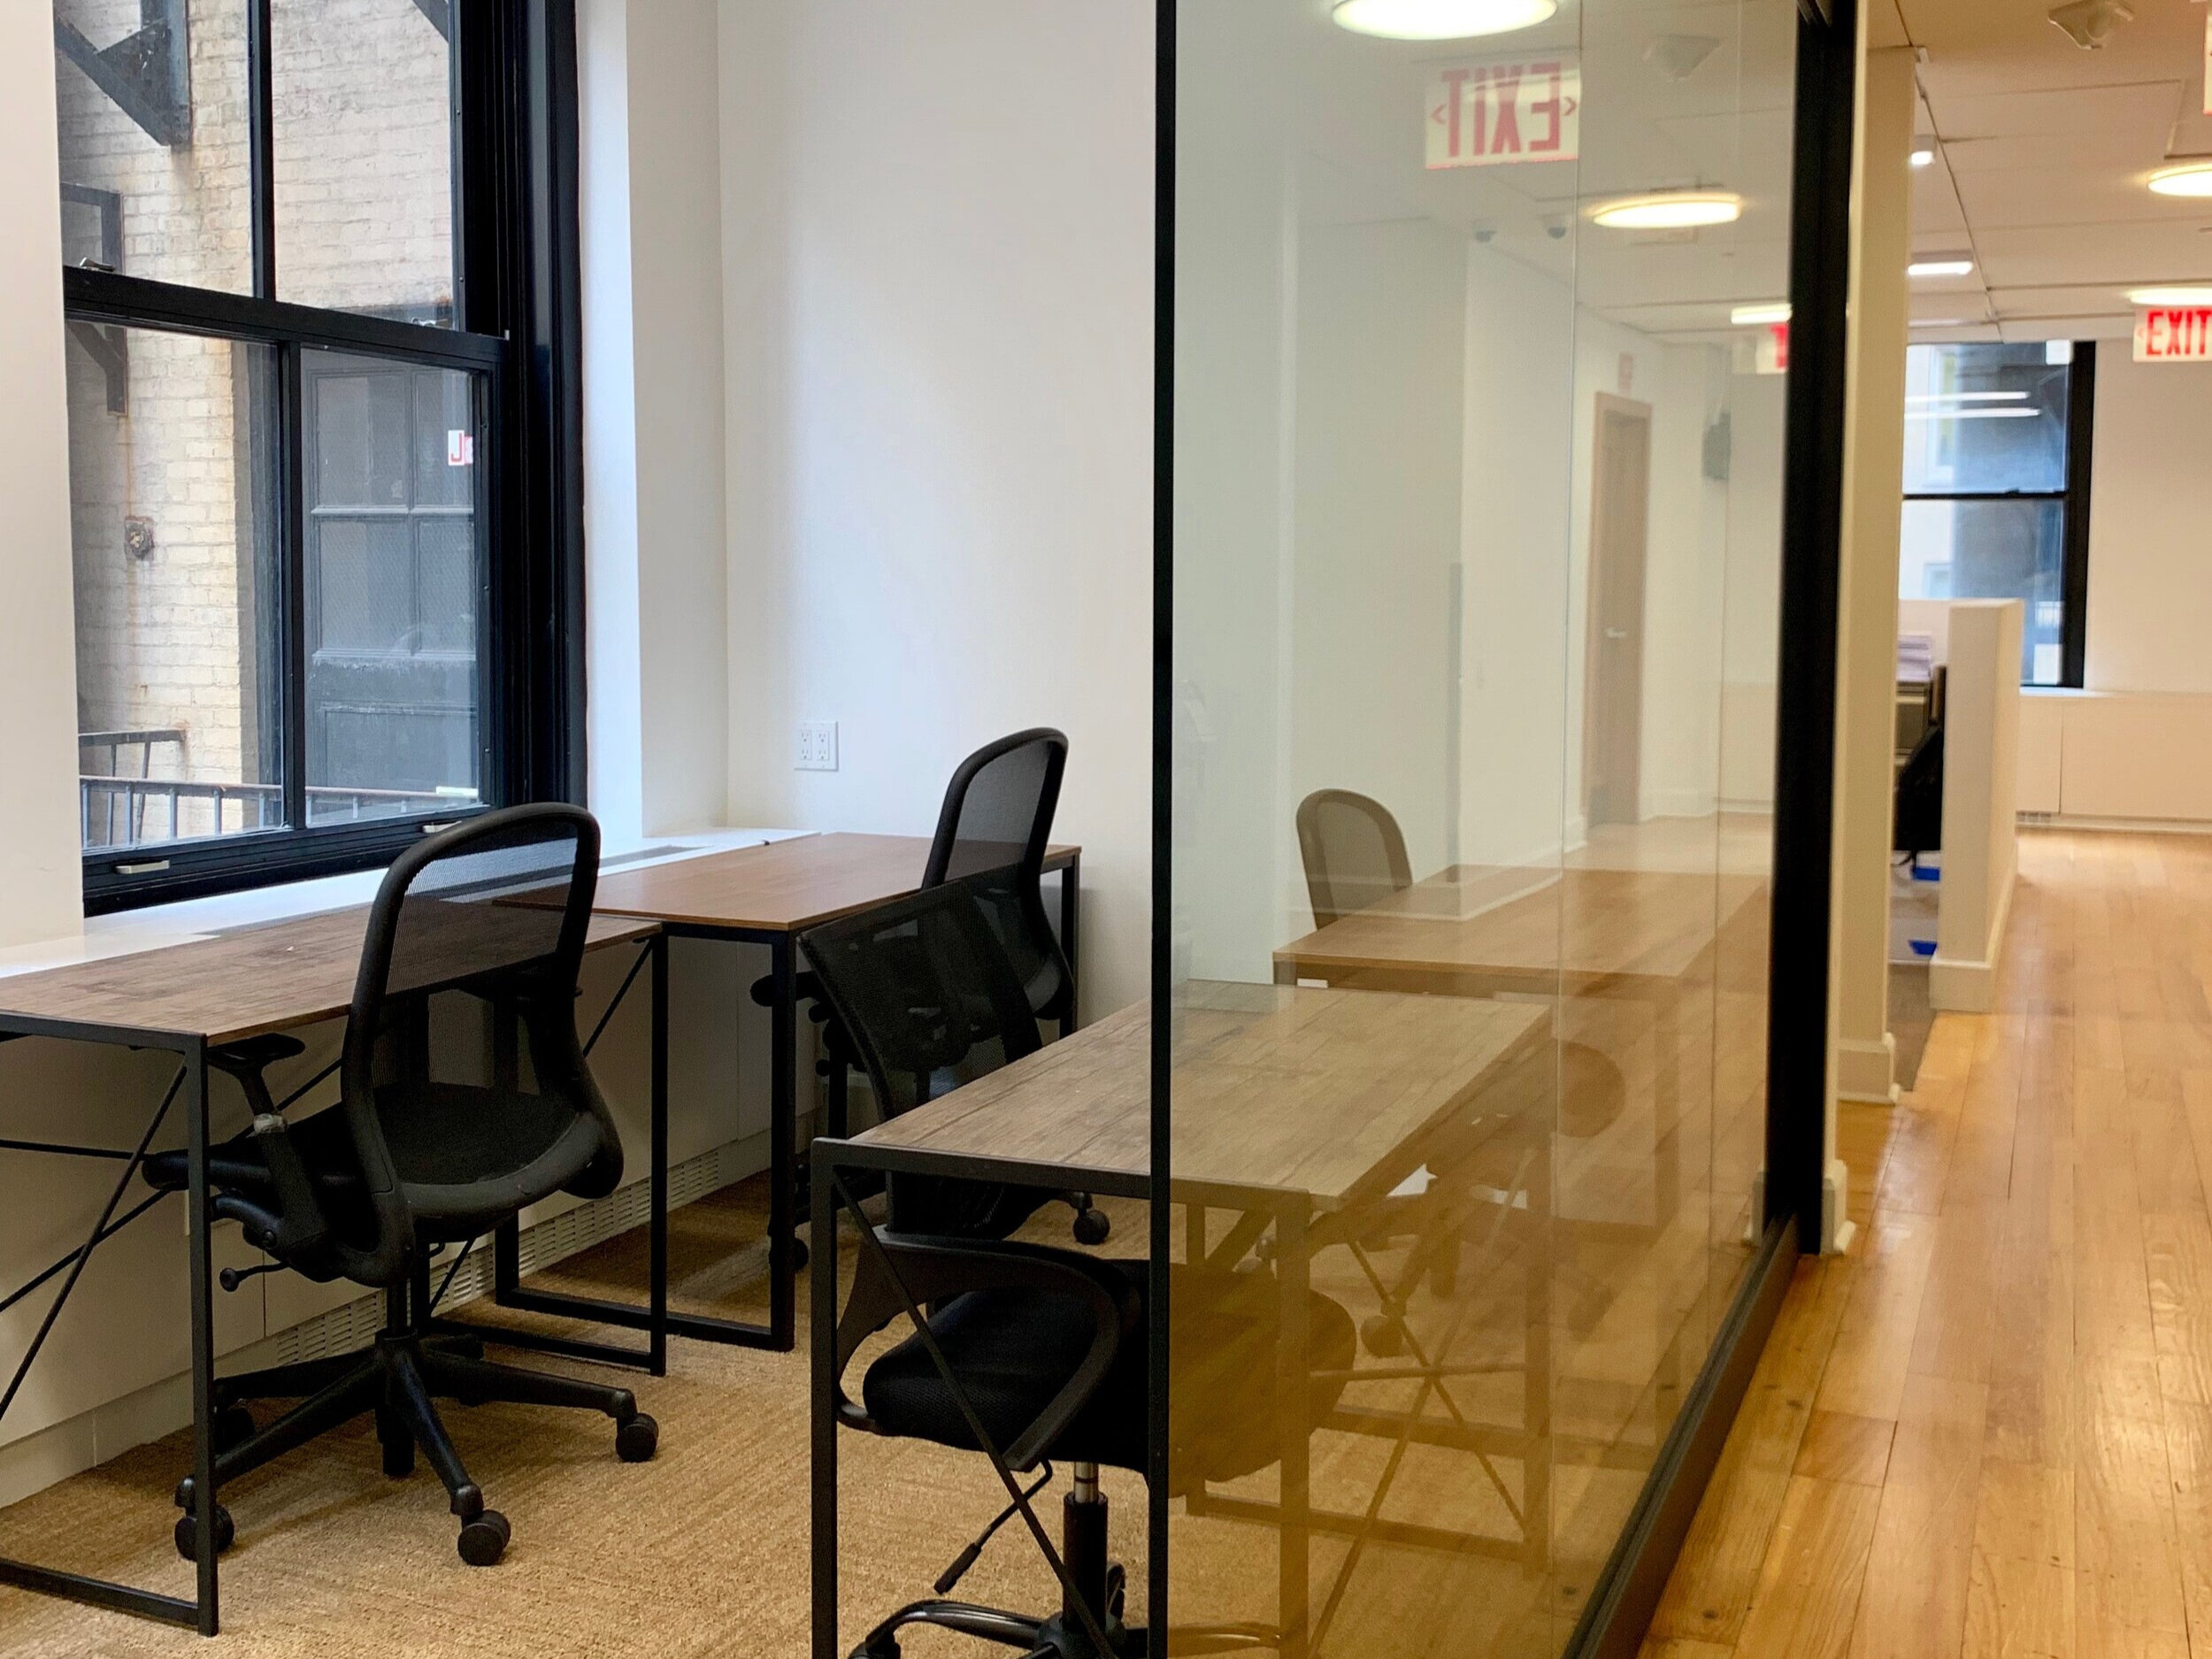 Suite 817: 4-5 people - Natural light without the noise. This office is perfect for a small but mighty team.